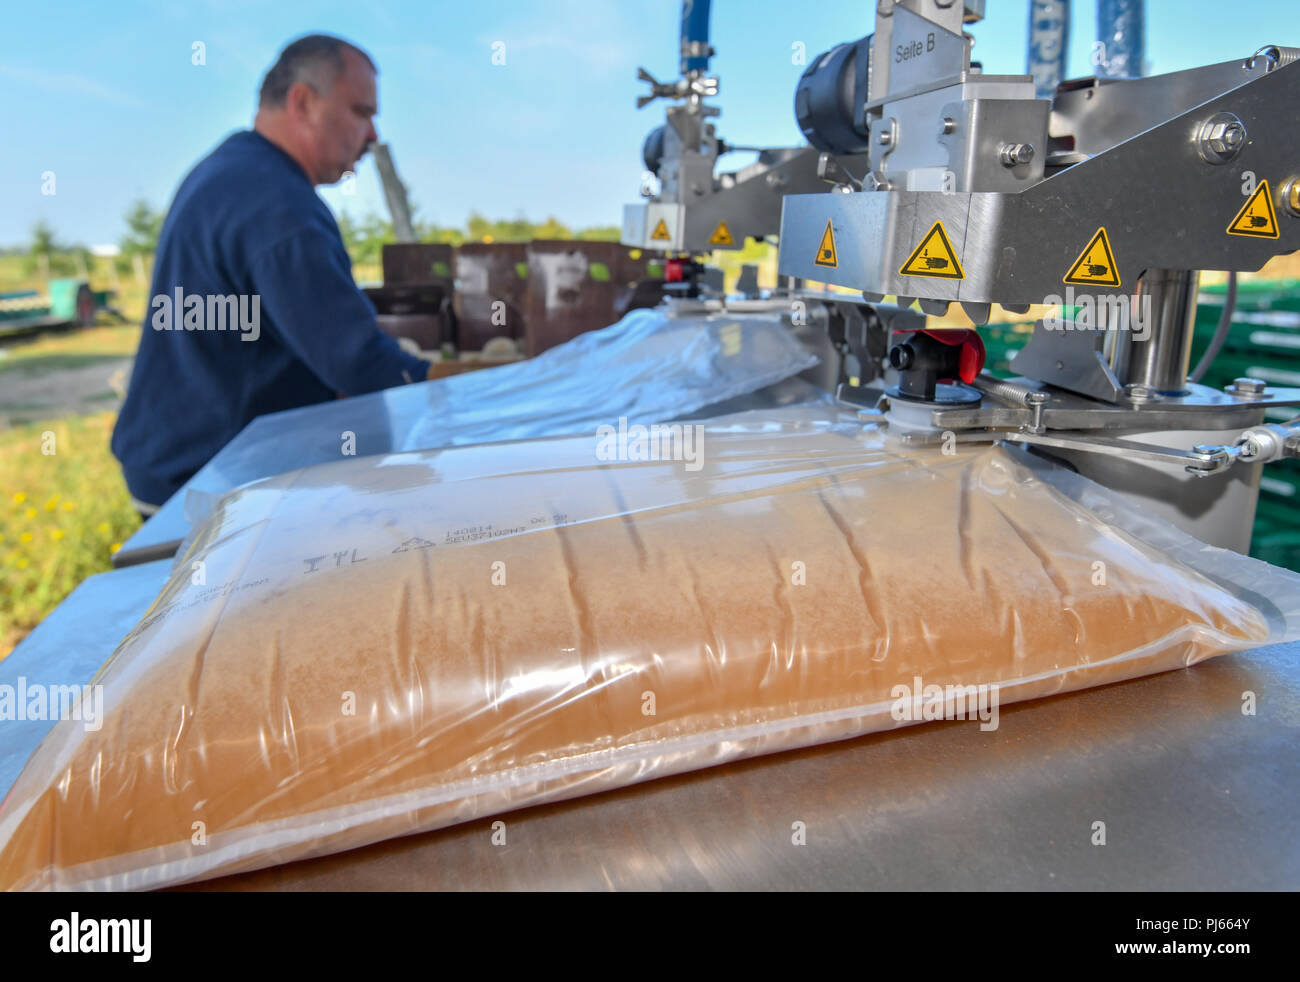 04.09.2018, Brandenburg, Frankfurt (Oder): Freshly squeezed apple juice is filled into a five litre tube bag on Mario Flach's mobile must crusher from Berlin. The mobile apple juice press tours Berlin and Brandenburg. From a quantity of 100 kilograms of apples, everyone can have their own apple juice pressed here. After pressing, the juice is heated to 80 degrees Celsius and filled into three or five litre tubular bags. From 100 kilograms you can squeeze about 50 to 60 litres of juice. Photo: Patrick Pleul/dpa-Zentralbild/ZB - Stock Image